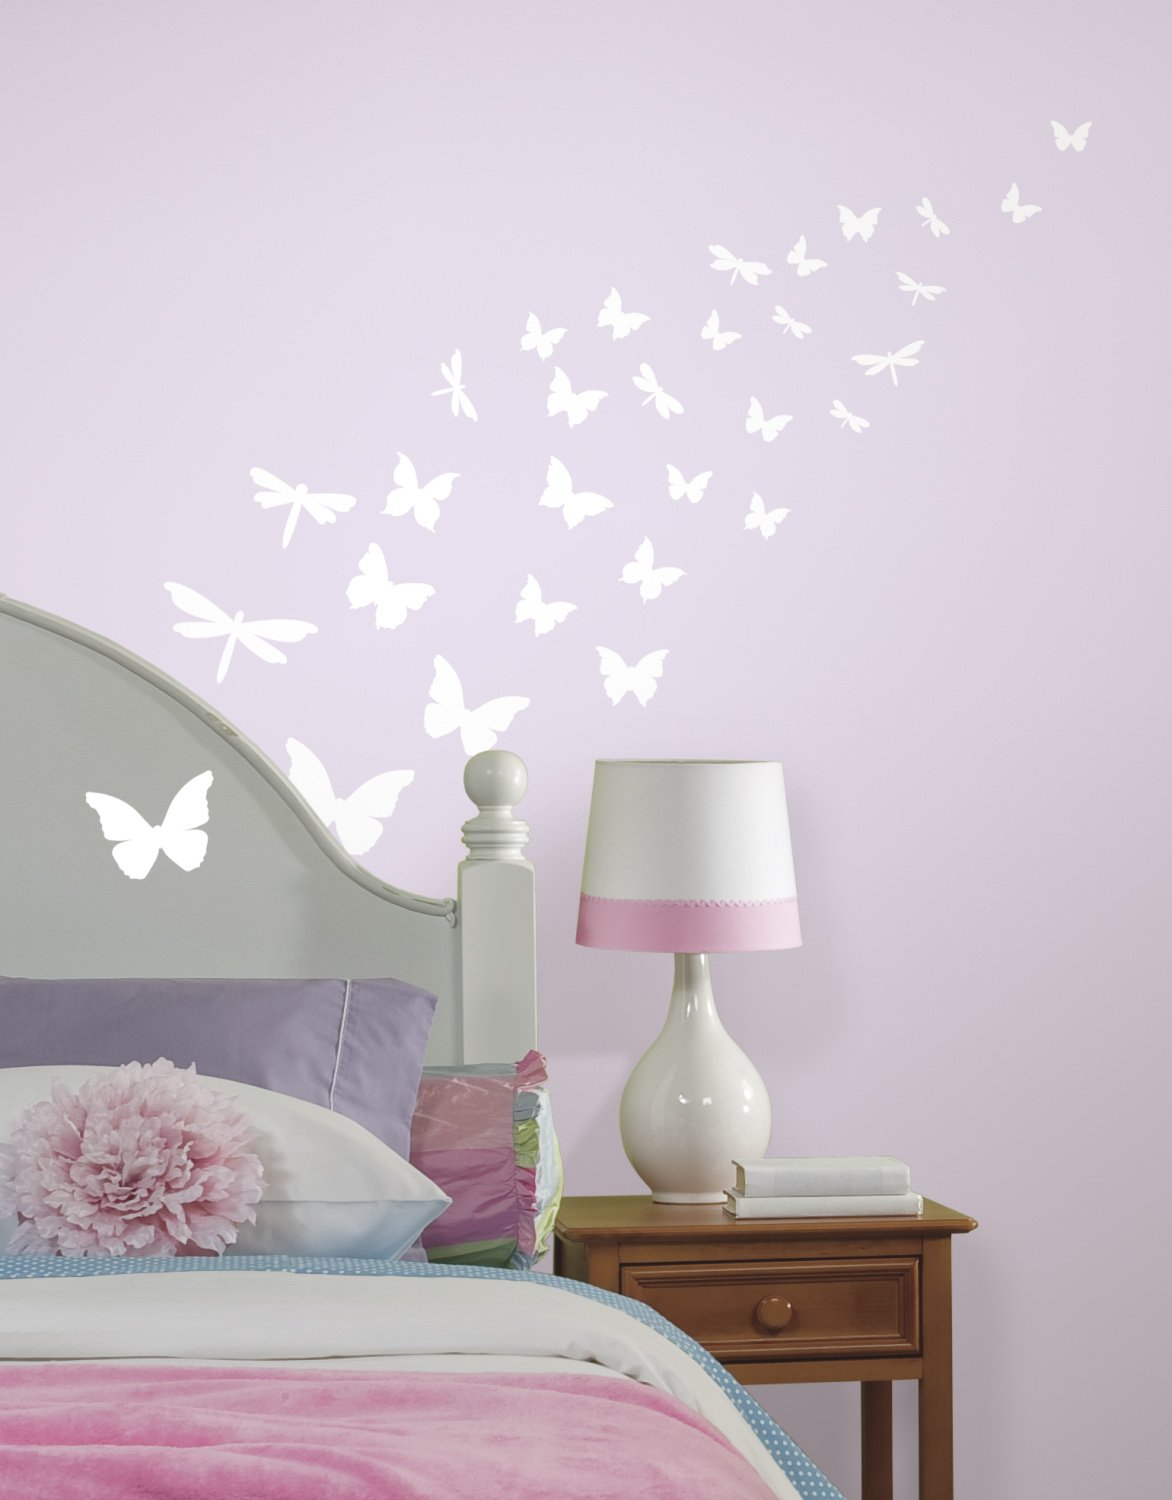 Amazon glow in the dark butterflies amp dragonfly wall amazon glow in the dark butterflies amp dragonfly wall decals home kitchen amipublicfo Image collections